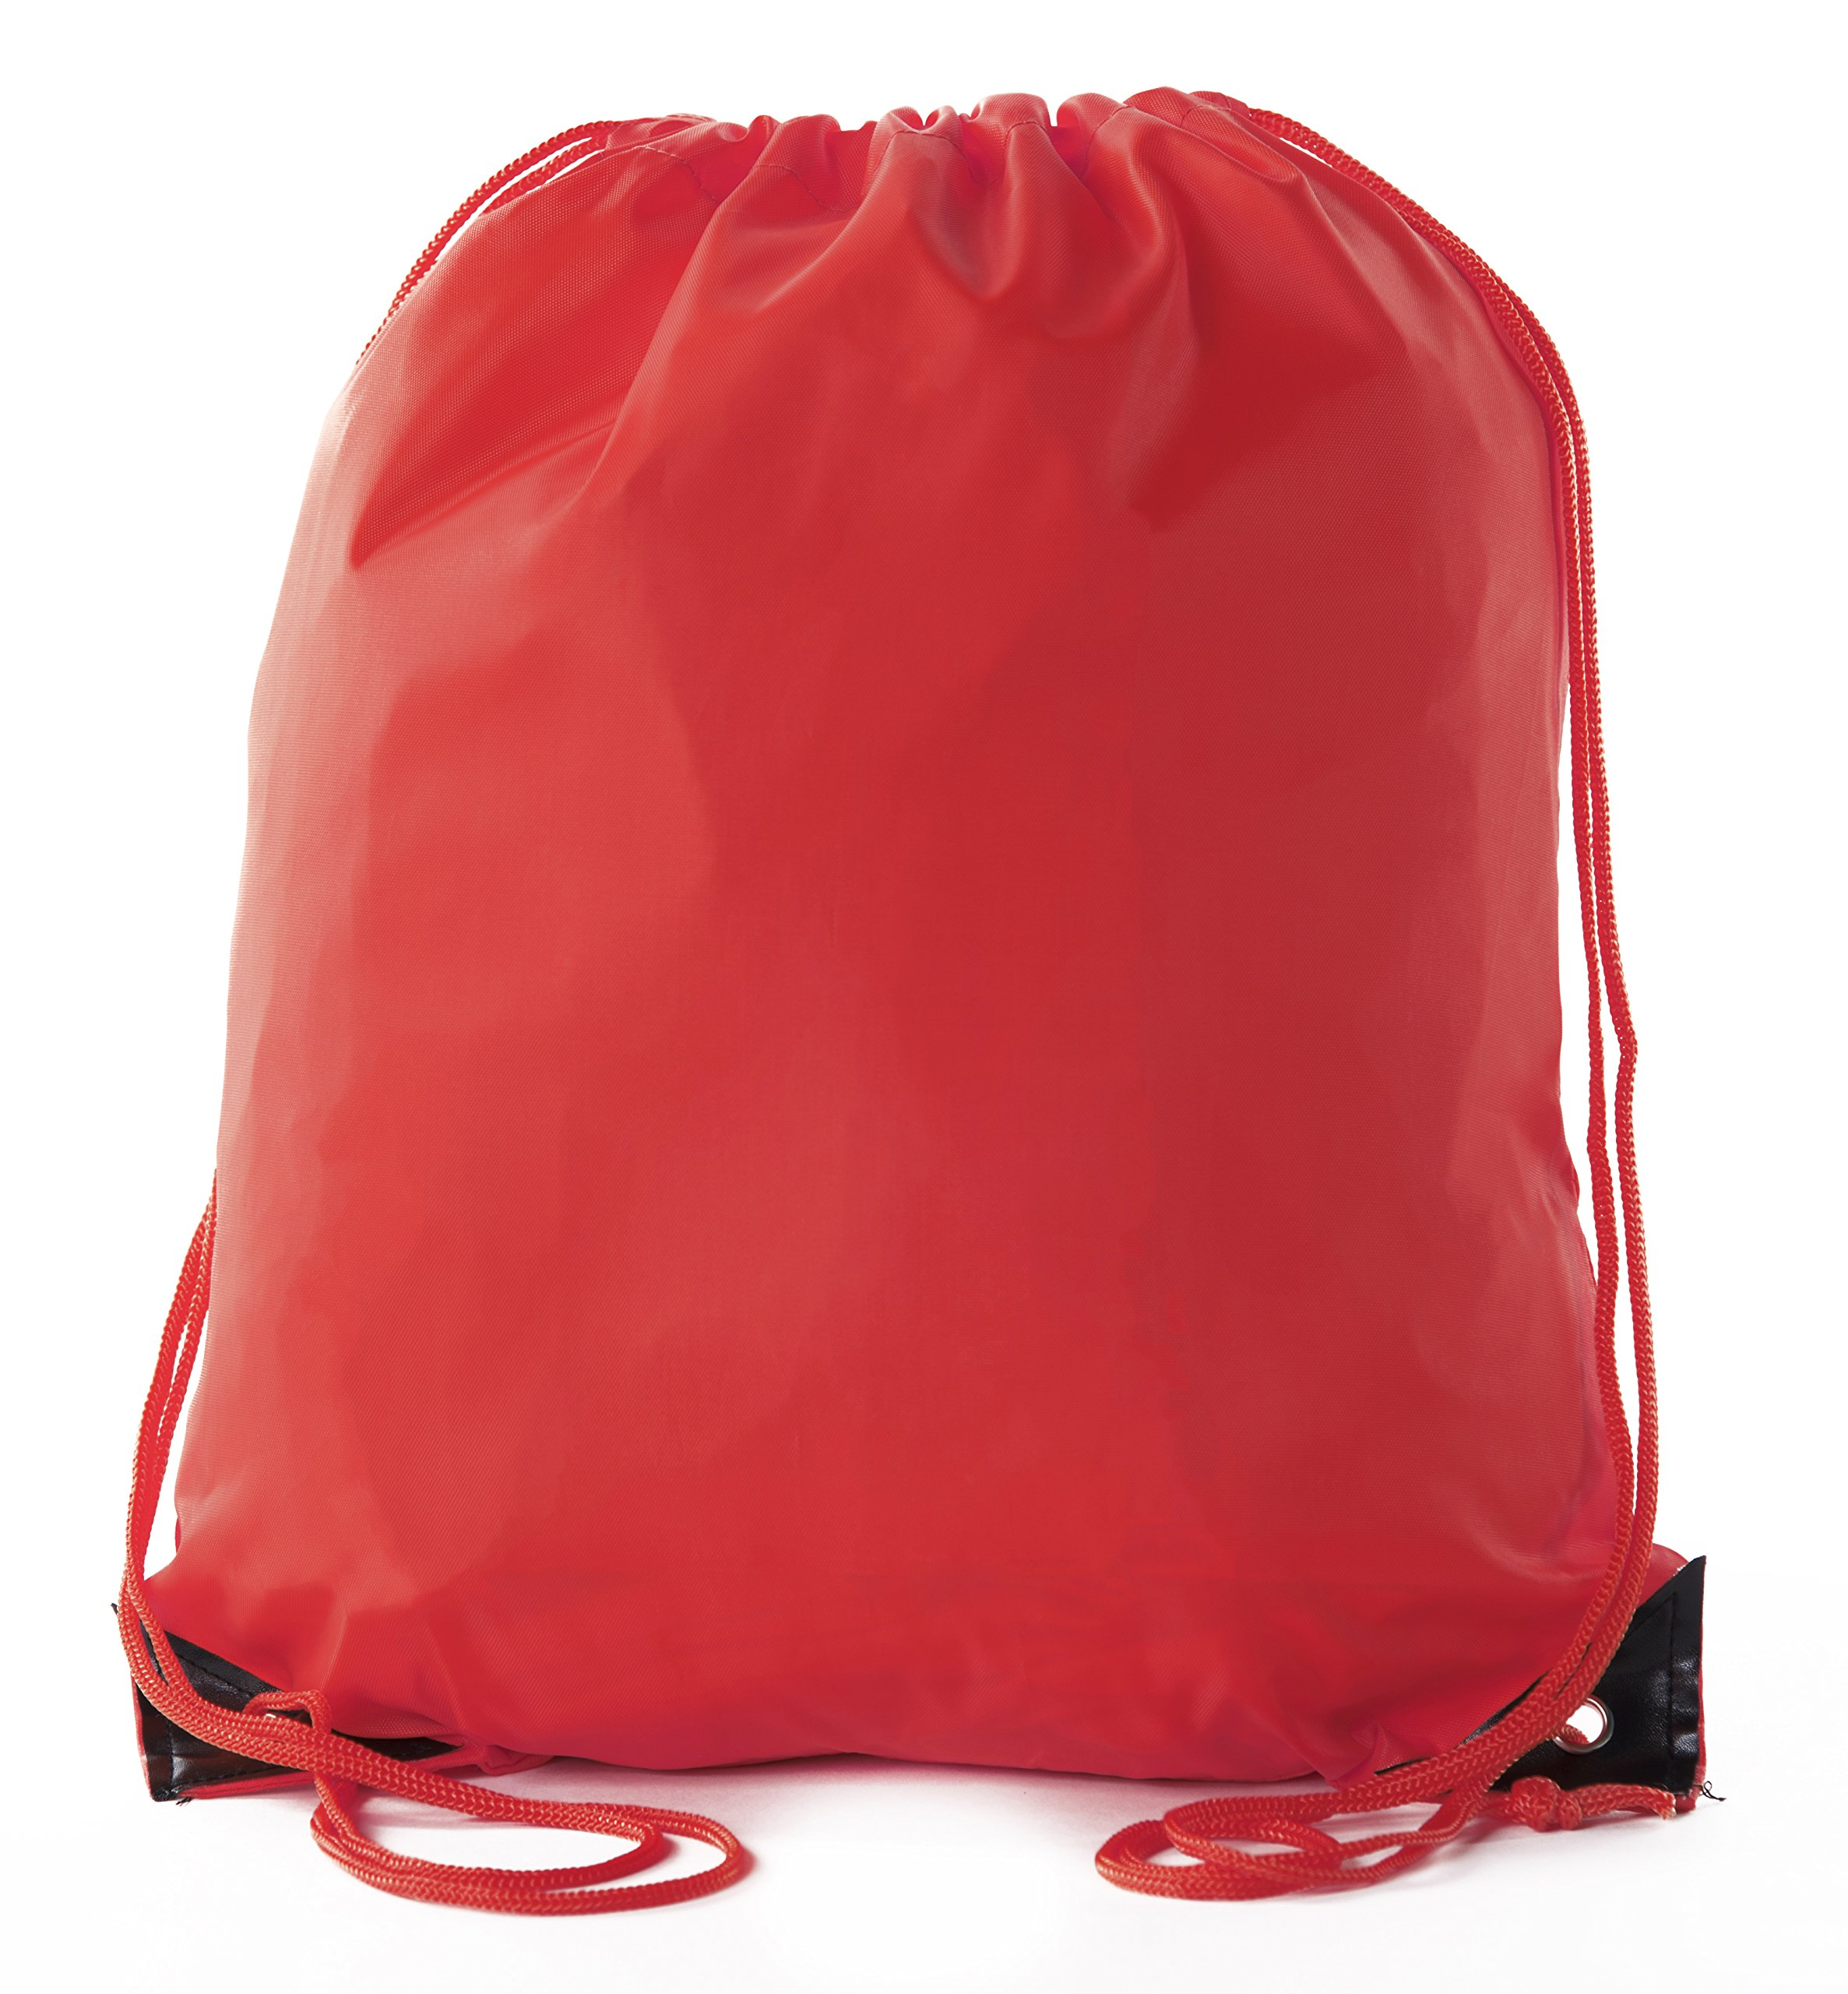 Mato & Hash Drawstring Bulk Bags Cinch Sacks Backpack Pull String Bags | 15 Colors | 1PK-100PK Available